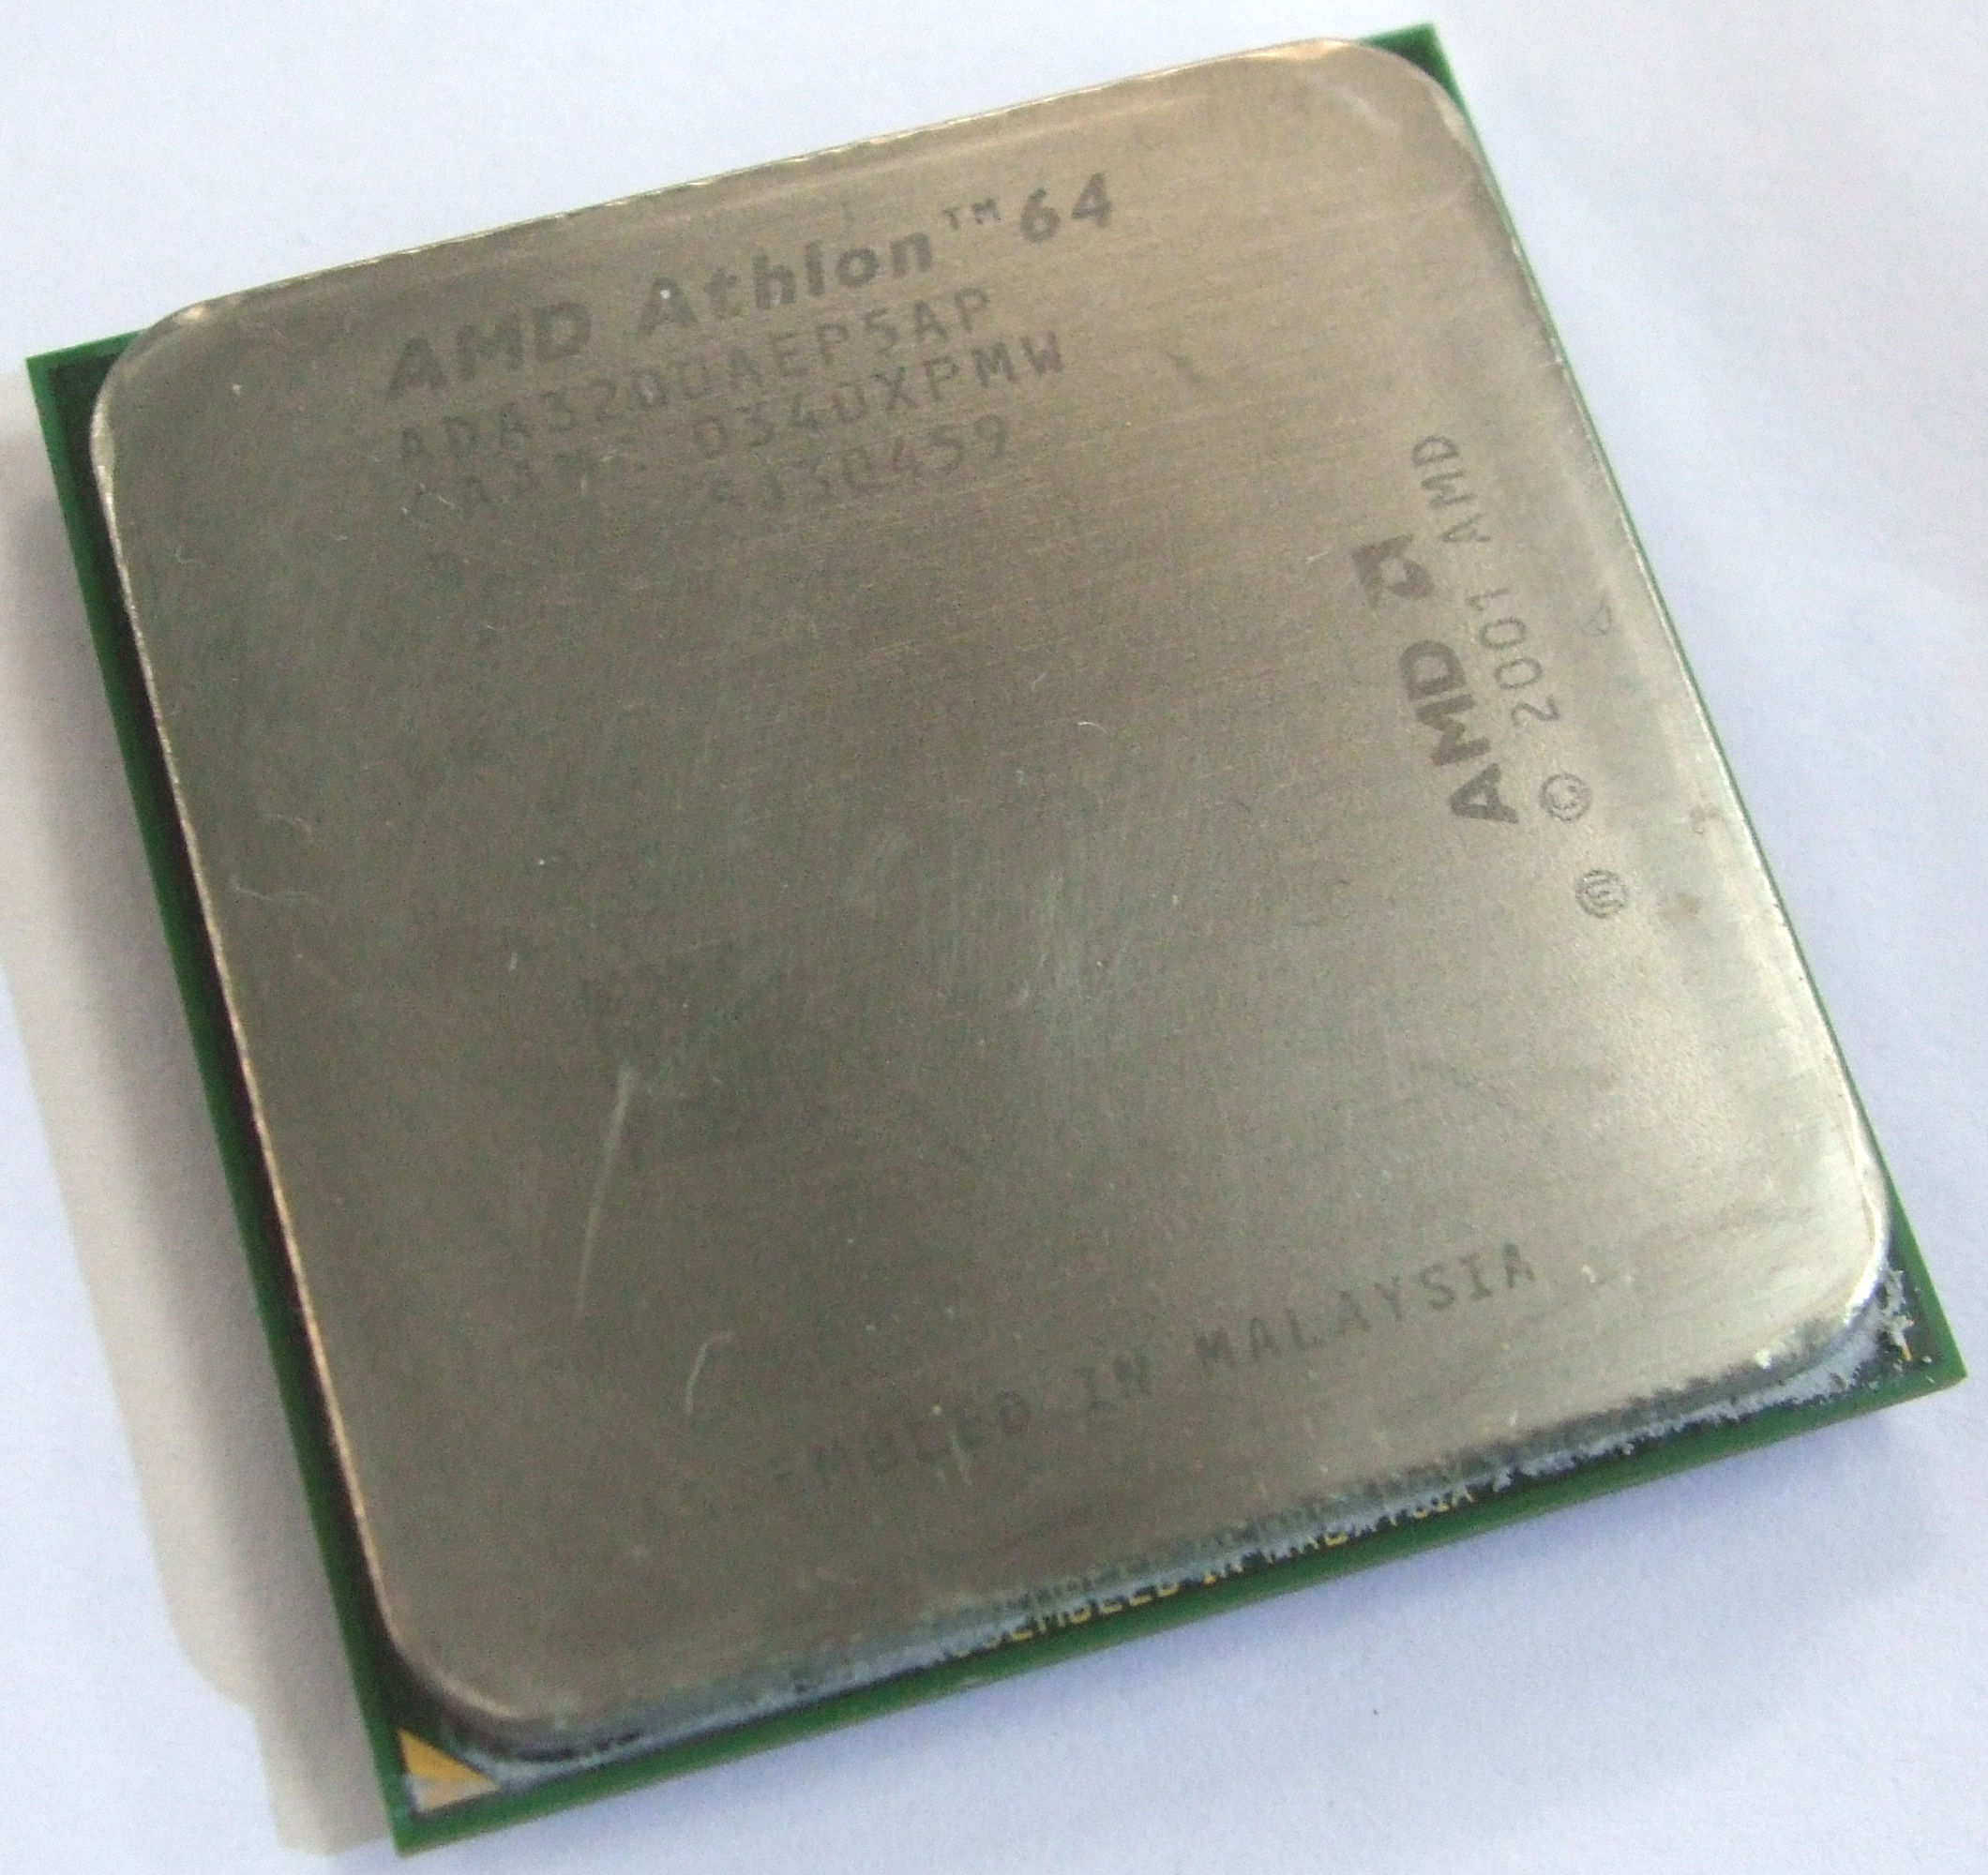 ADA3500IAA4CN AMD Athlon 64 3500+ Processor